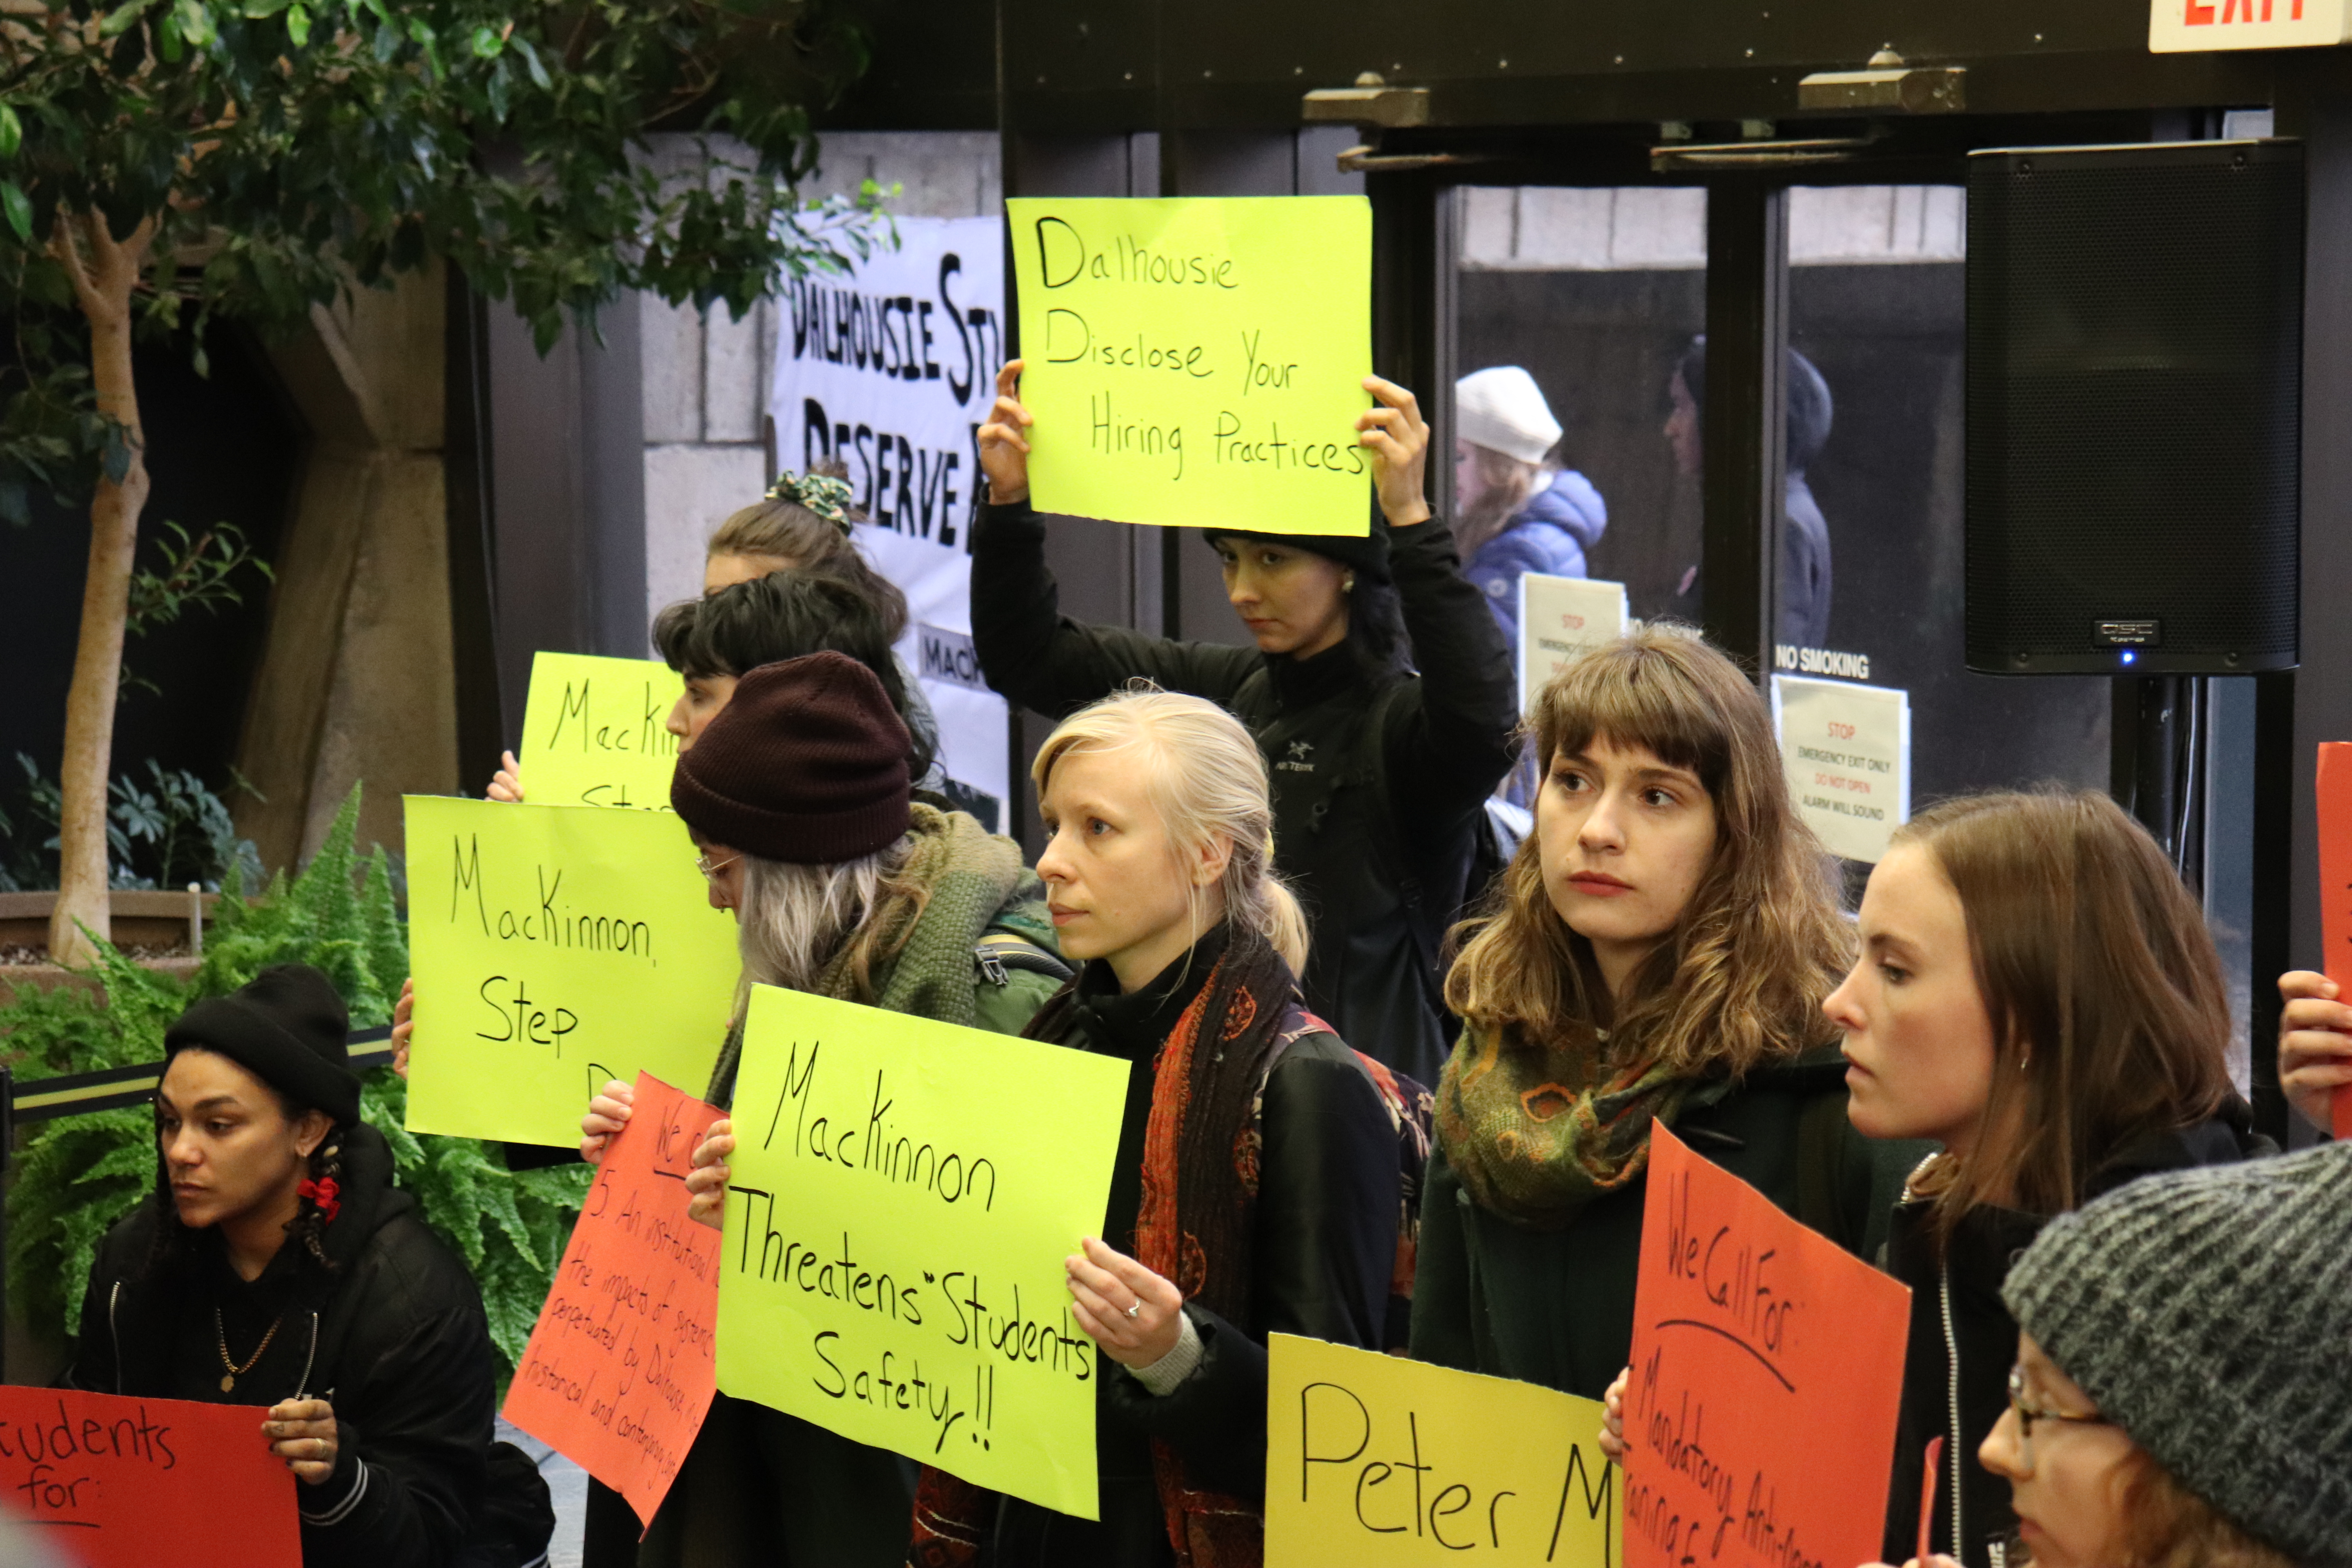 In this image: Dalhousie students stand in the Arts Centre holding signs protesting Peter MacKinnon.